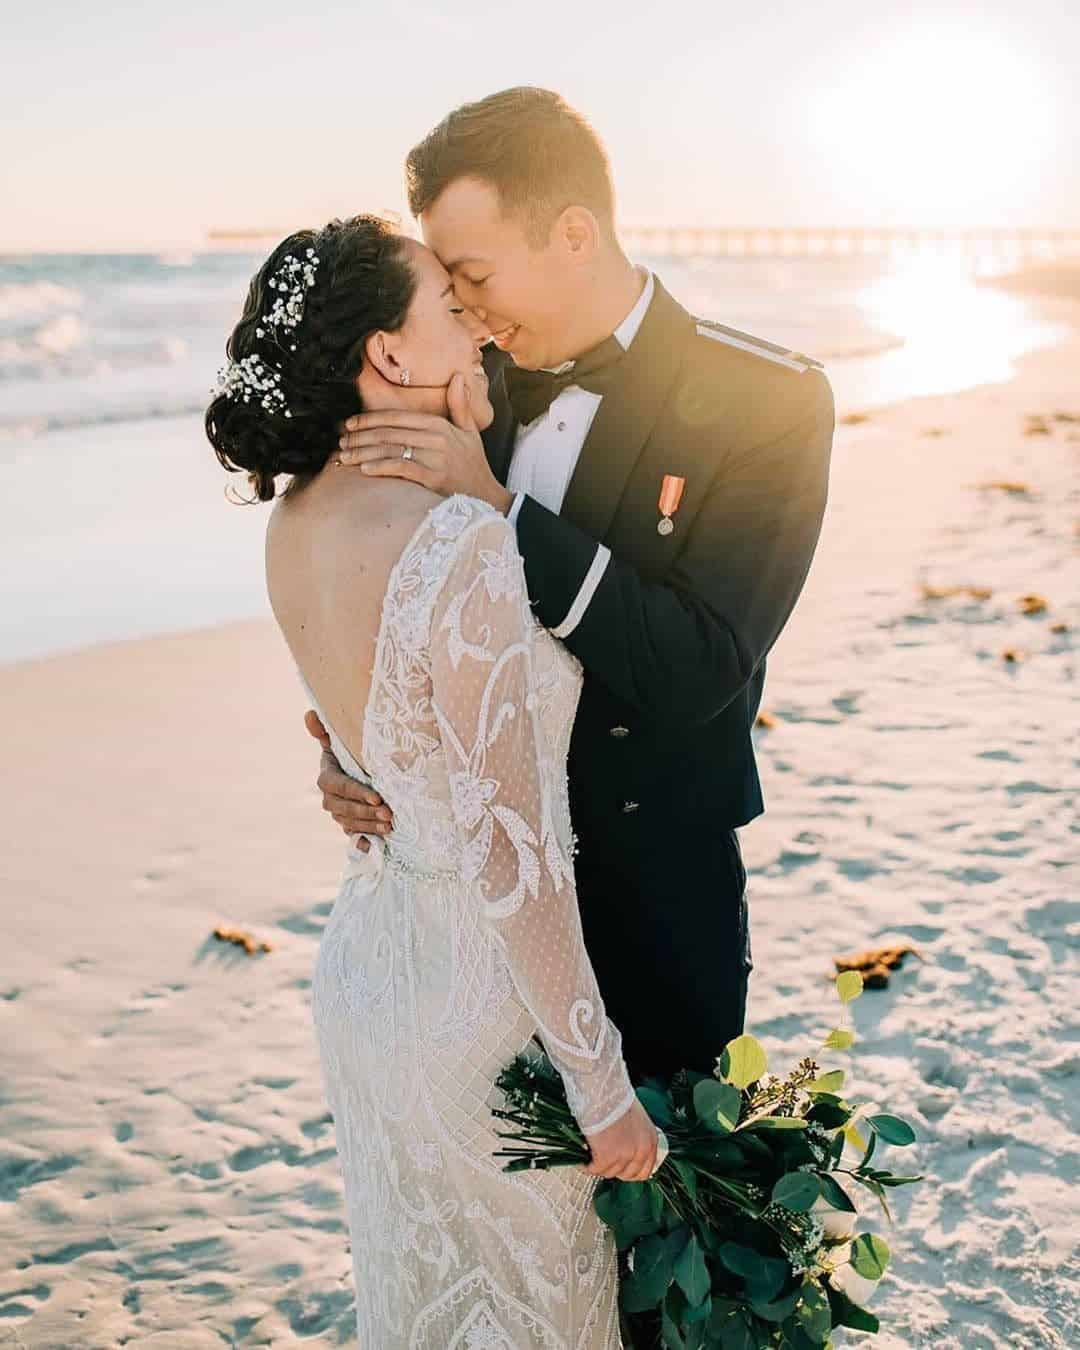 Elopement Wedding Dresses Long Sleeve Beaded Dress Intimate Wedding Dress Romantic Karissa Layne Photography